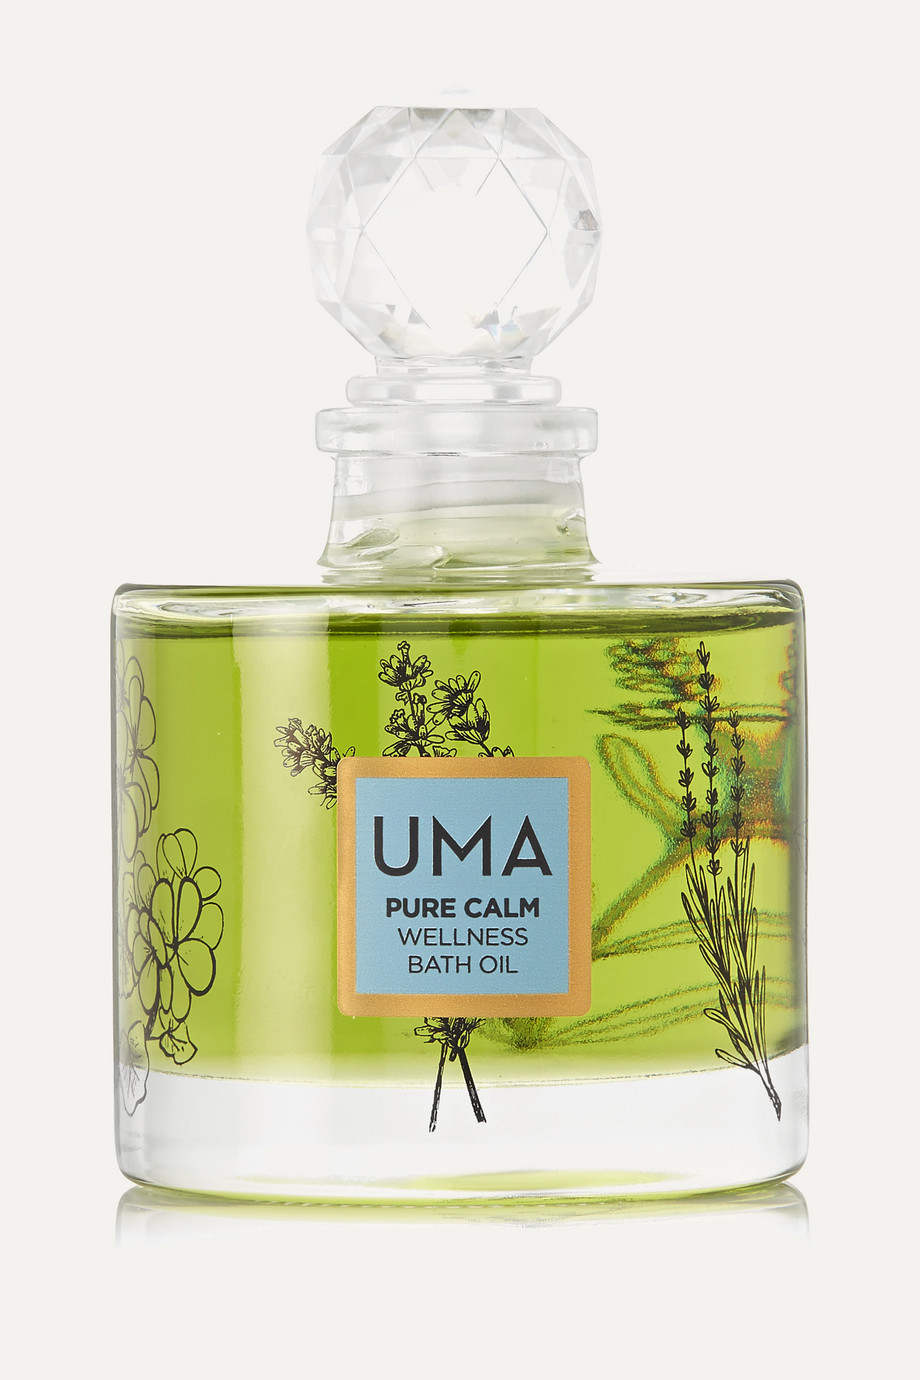 UMA Oils + NET SUSTAIN Pure Calm Wellness Bath Oil, 100ml